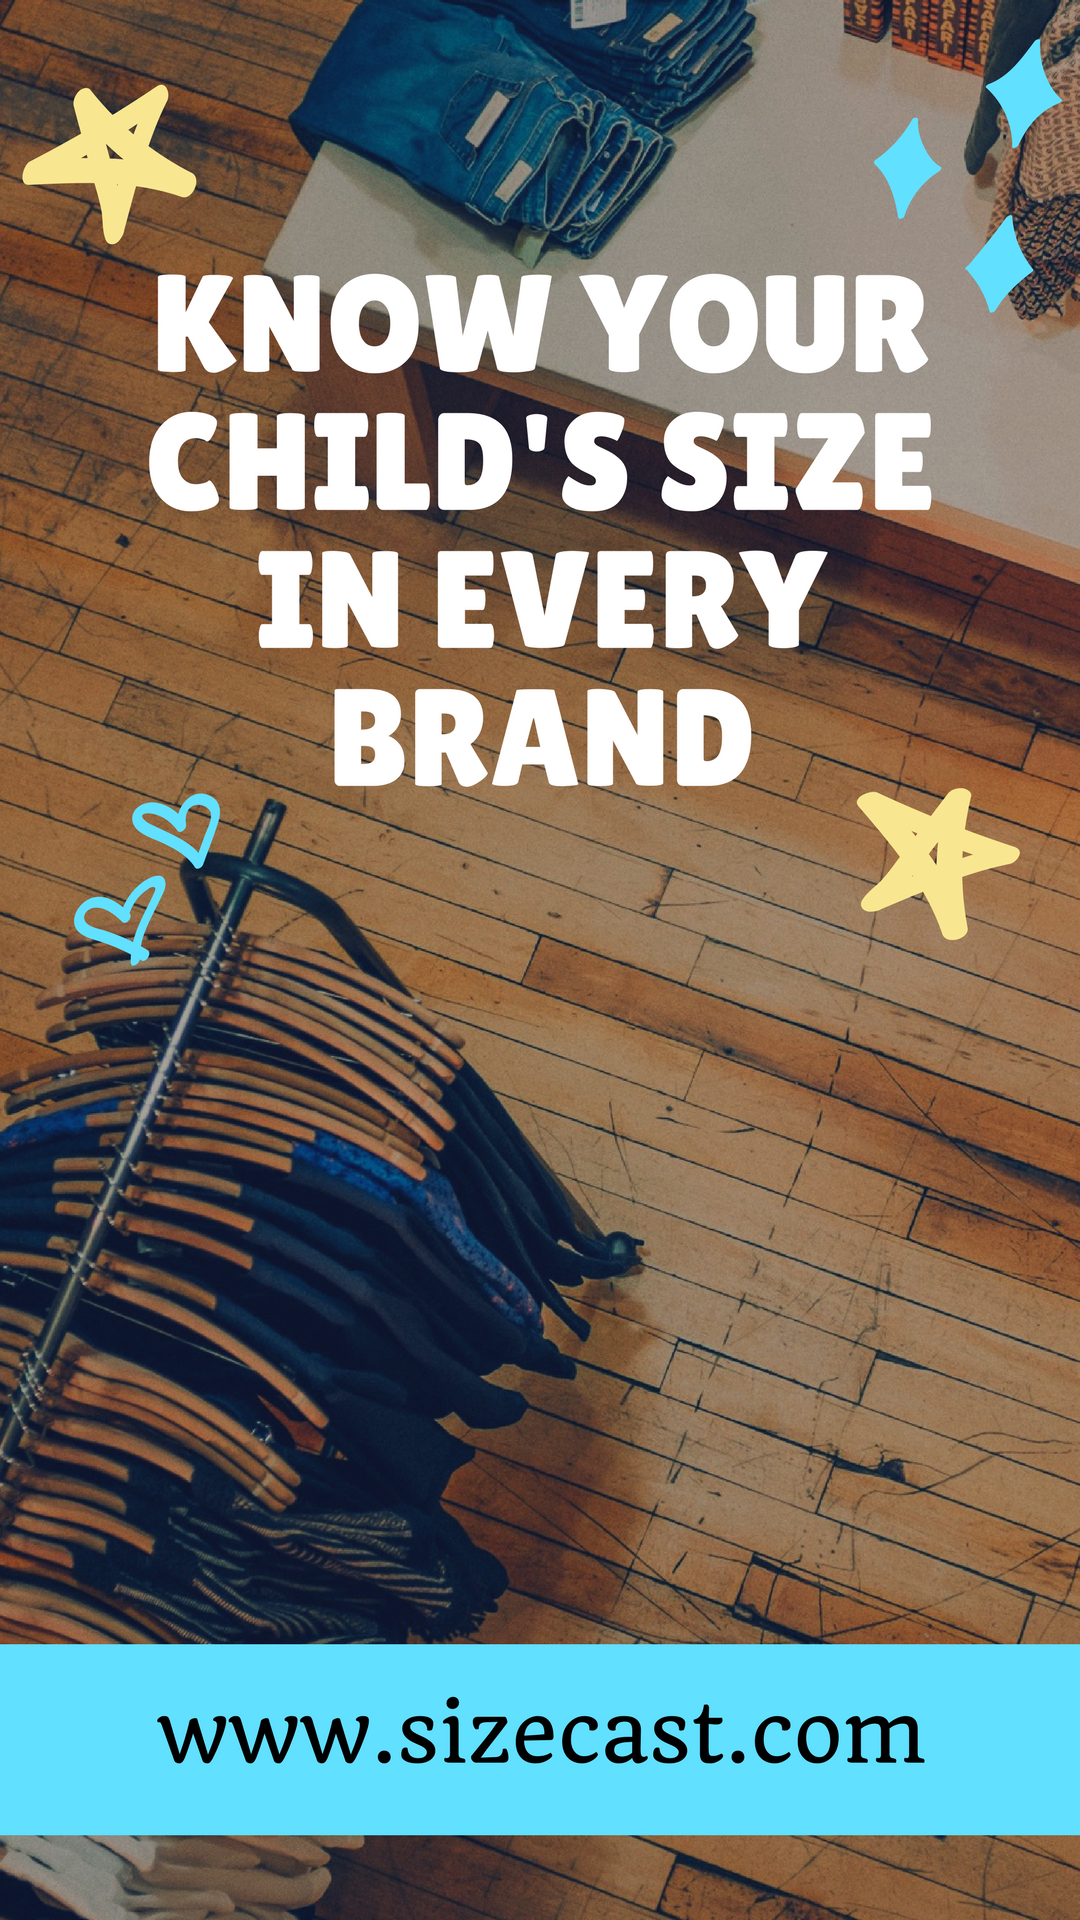 Toddler boy growth chart calculator images free any chart examples calculate your childs clothing size in over 80 popular brands at predict future clothing sizes in nvjuhfo Images